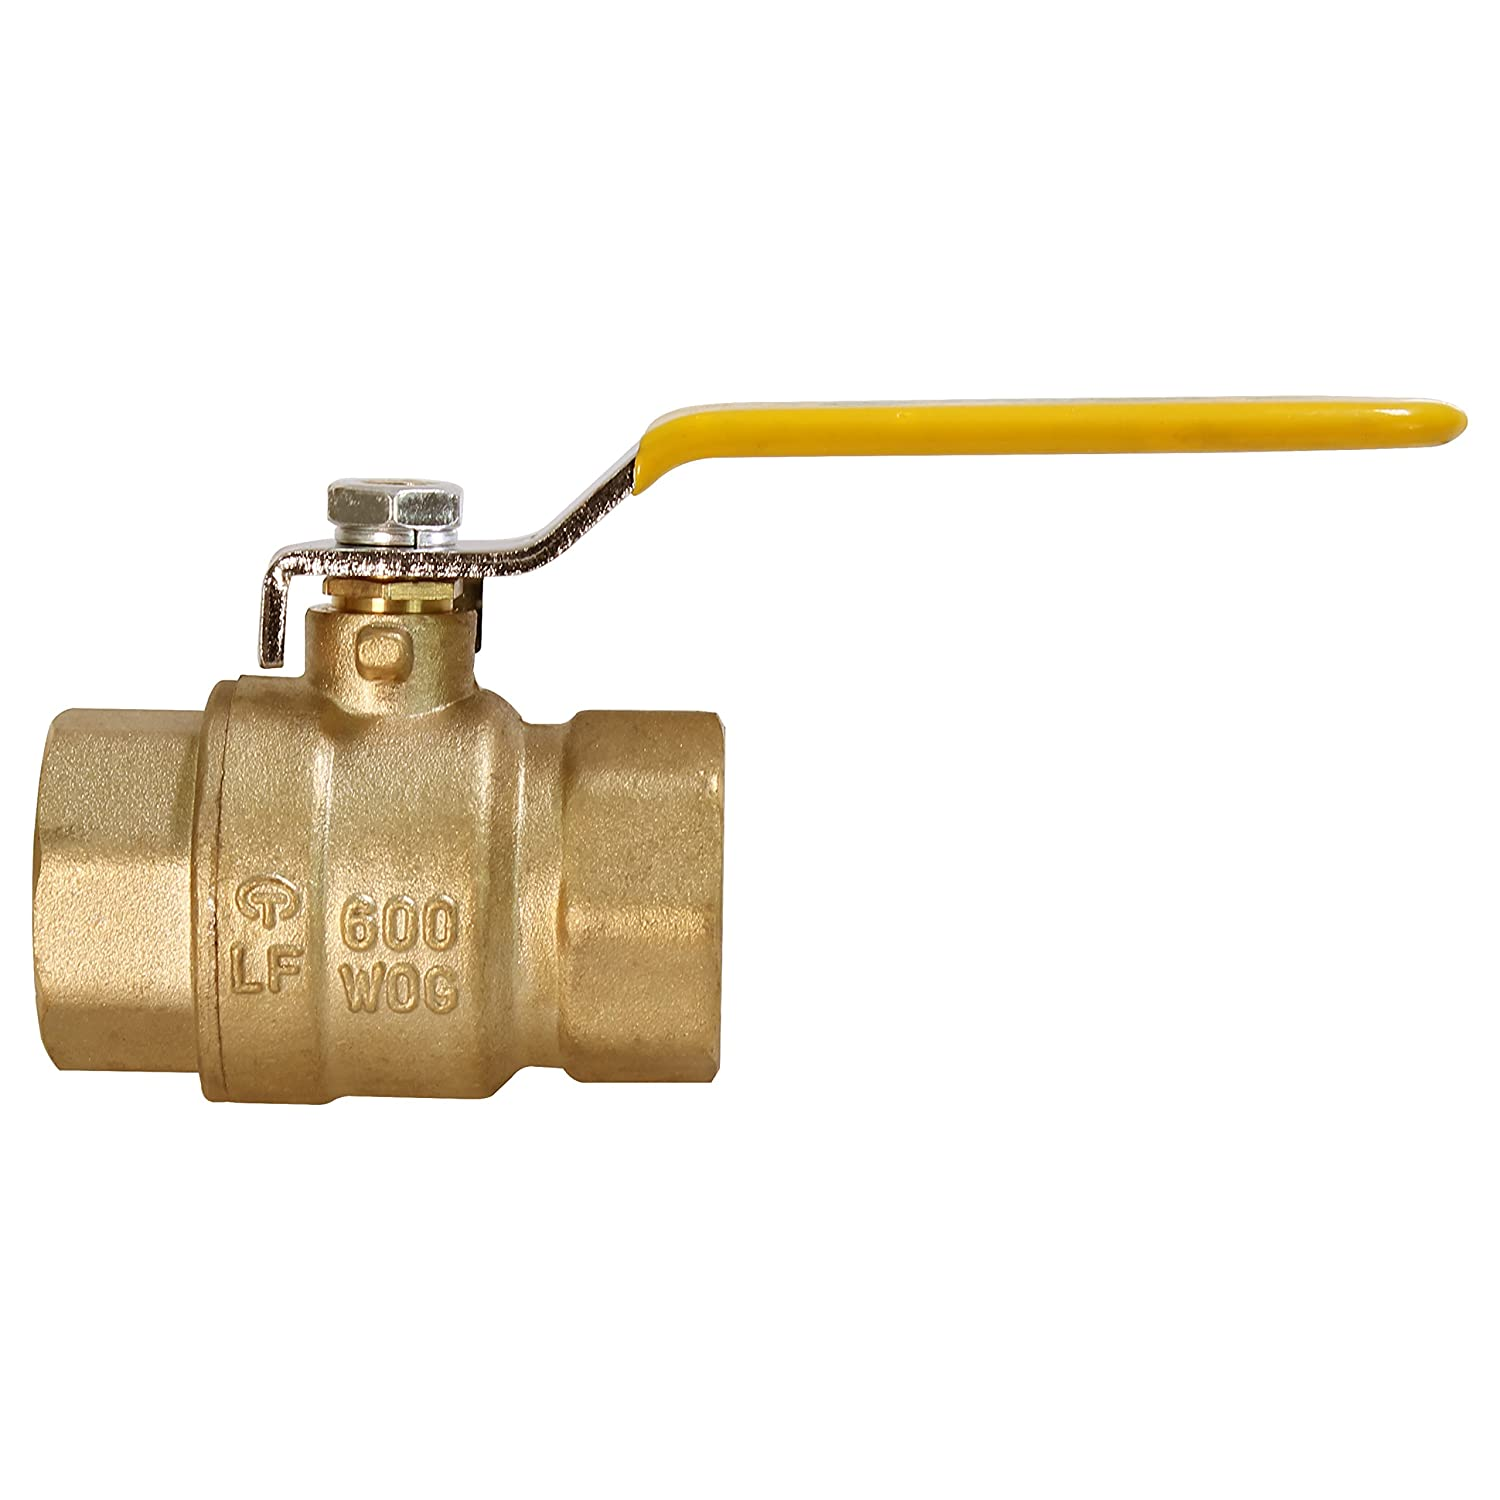 Everflow Supplies 600T001-NL Lead Free Full Port Forged Brass Ball Valve with Female Threaded IPS Connections 1